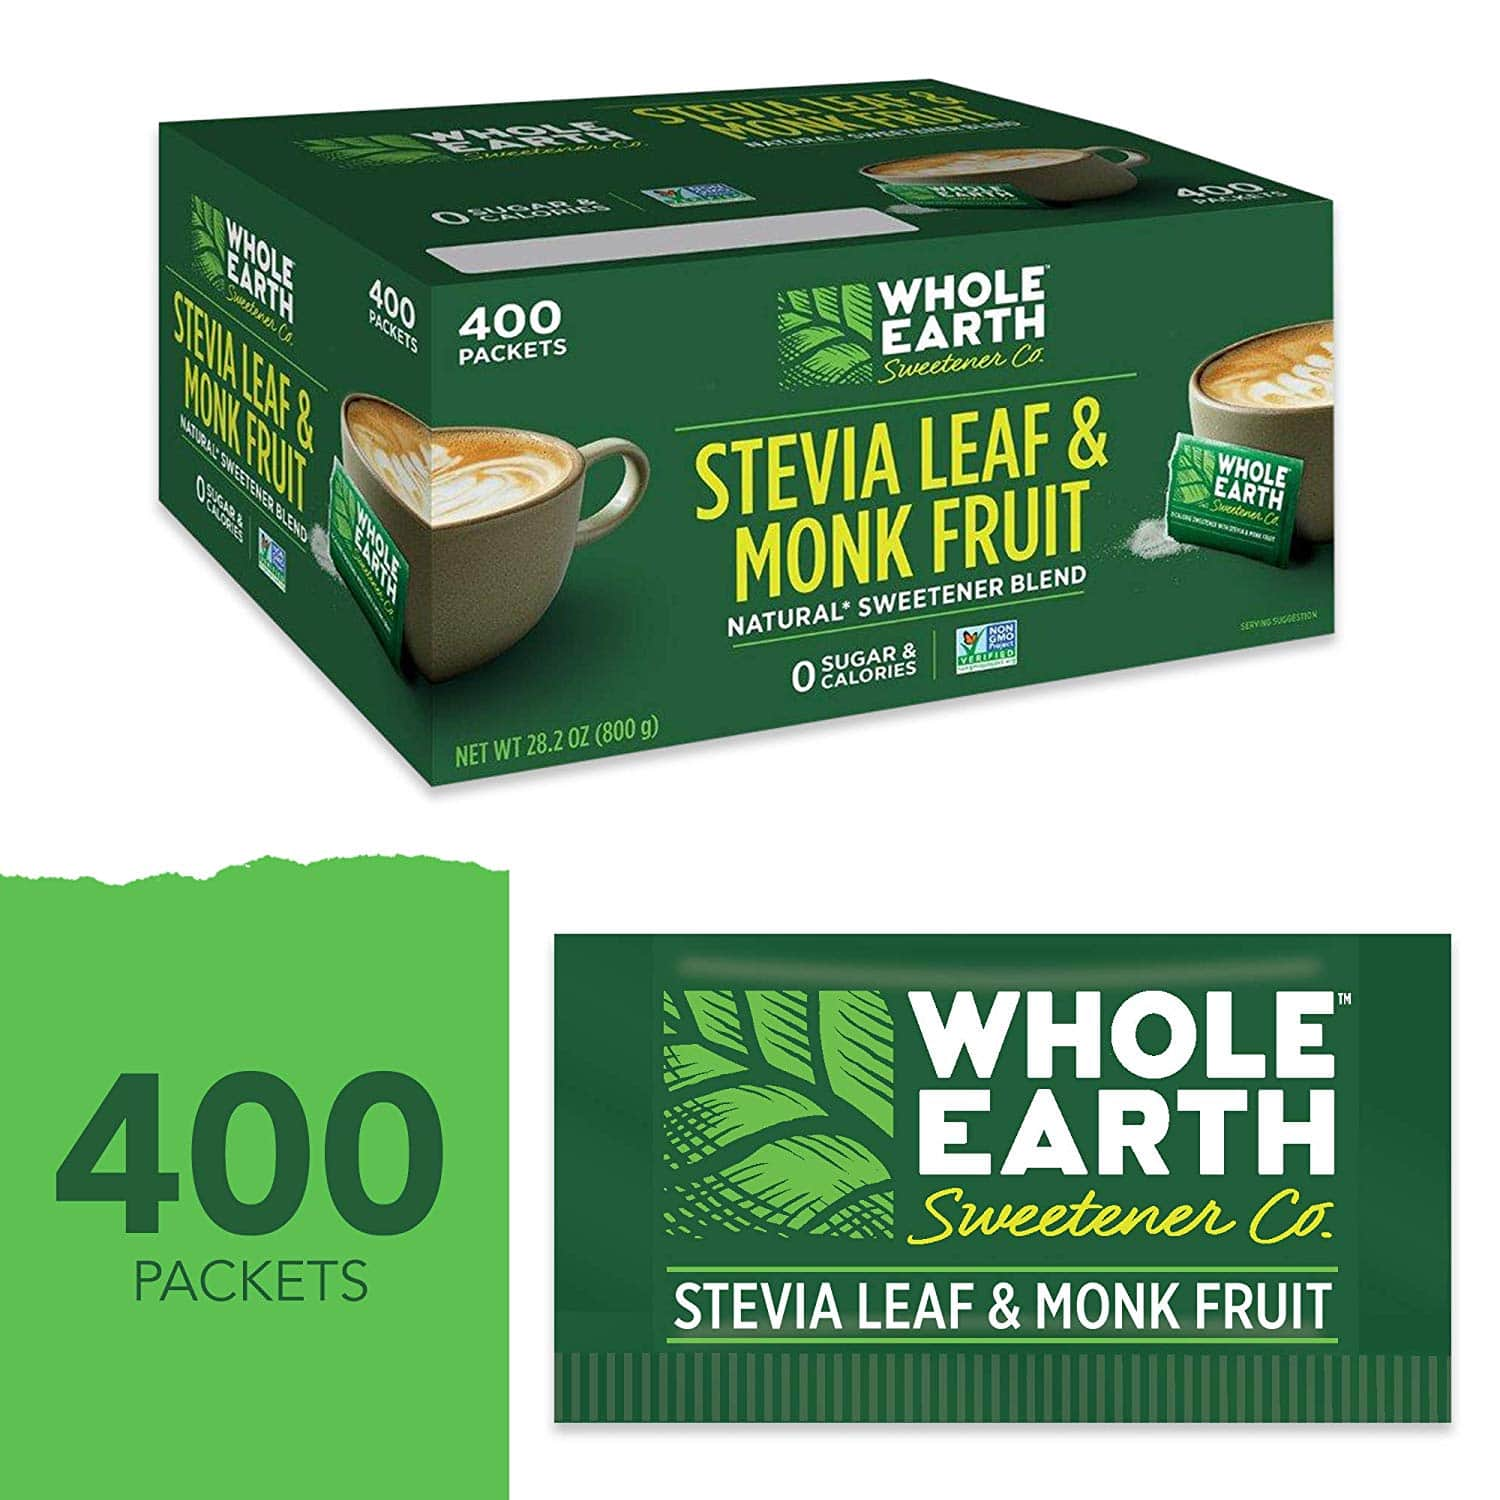 Whole Earth Sweetener Stevia Leaf & Monk Fruit Zero Calorie Sweetener, 400 Count Packets - $13.49 (or $12.82 w/ S&S) @ Amazon.com